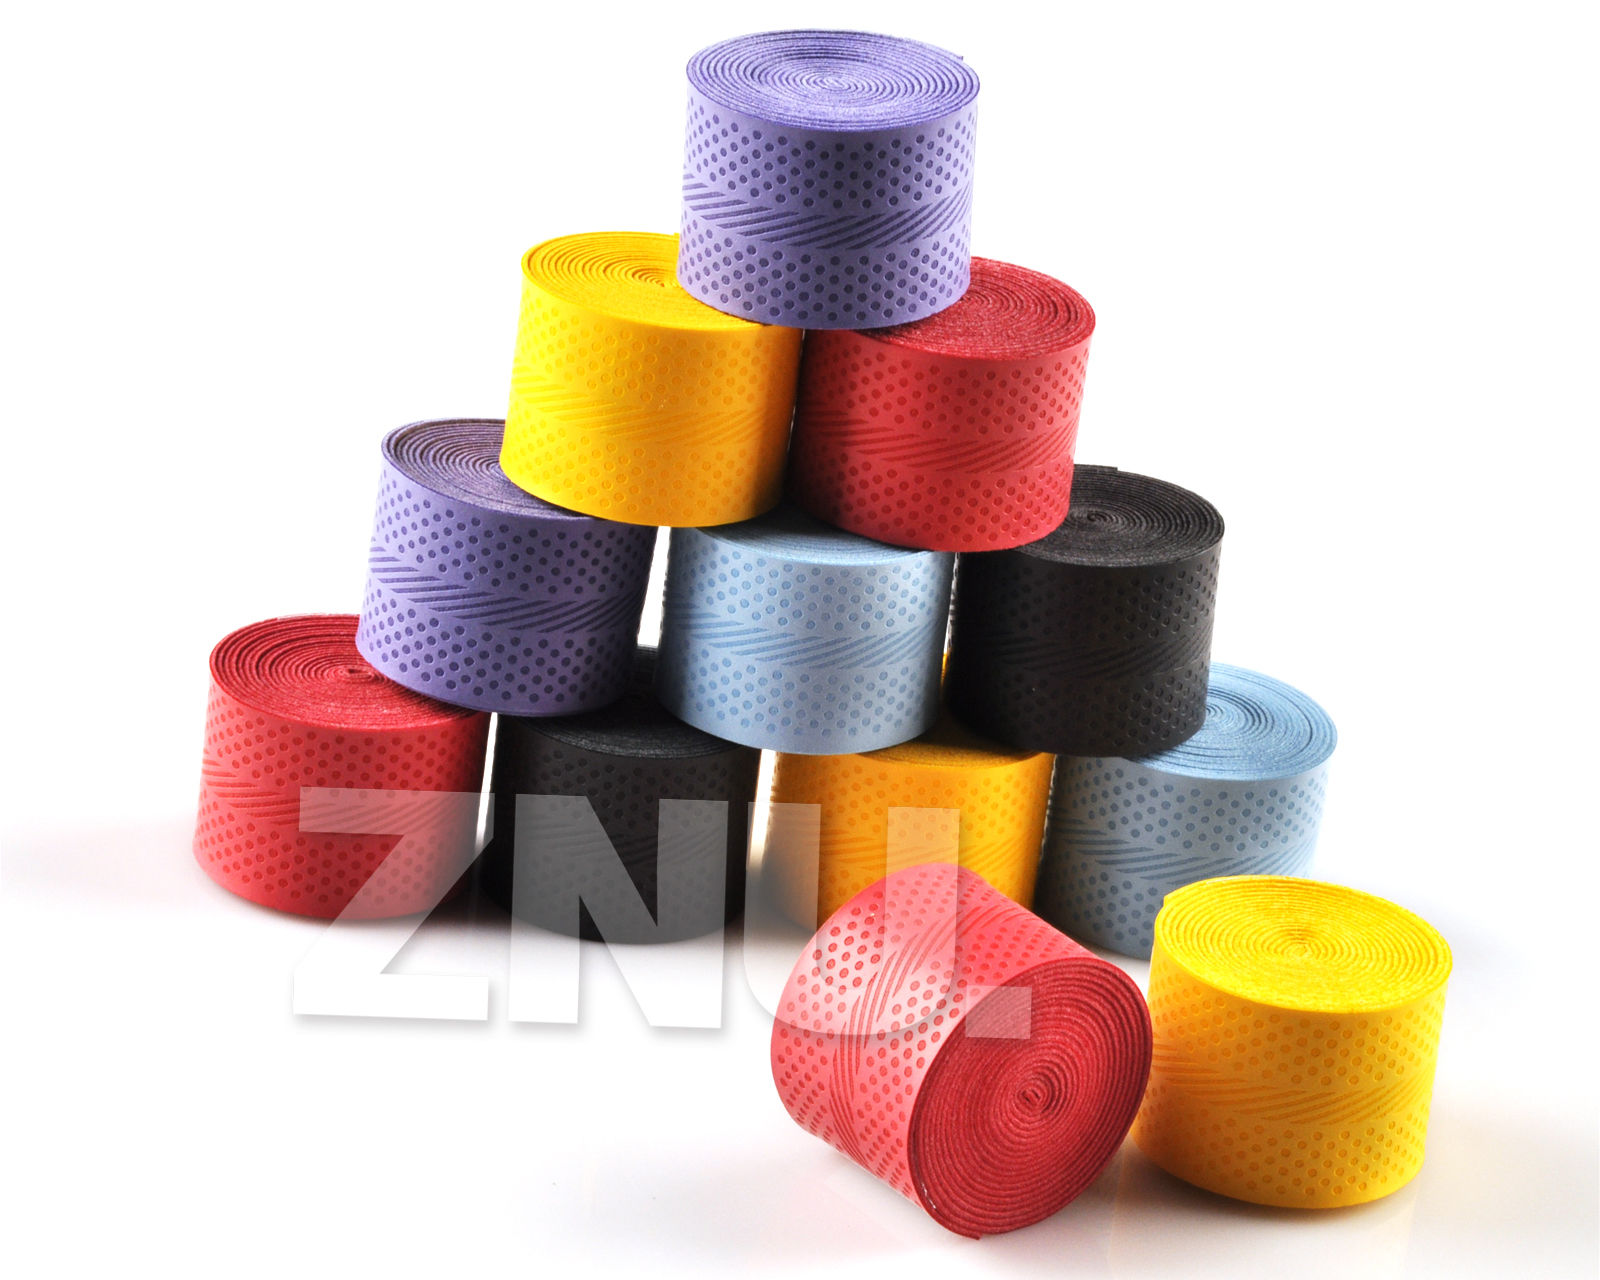 VIM Outdoor 2PCs Sweatband Badminton Tennis Sports Over Grip Griffband Anti-slip Overgrip Racket Fishing Tape Multicolor Sweat VIM Outdoor 2PCs Sweatband Badminton Tennis Sports Over Grip Griffband Anti-slip Overgrip Racket Fishing Tape Multicolor Sweat